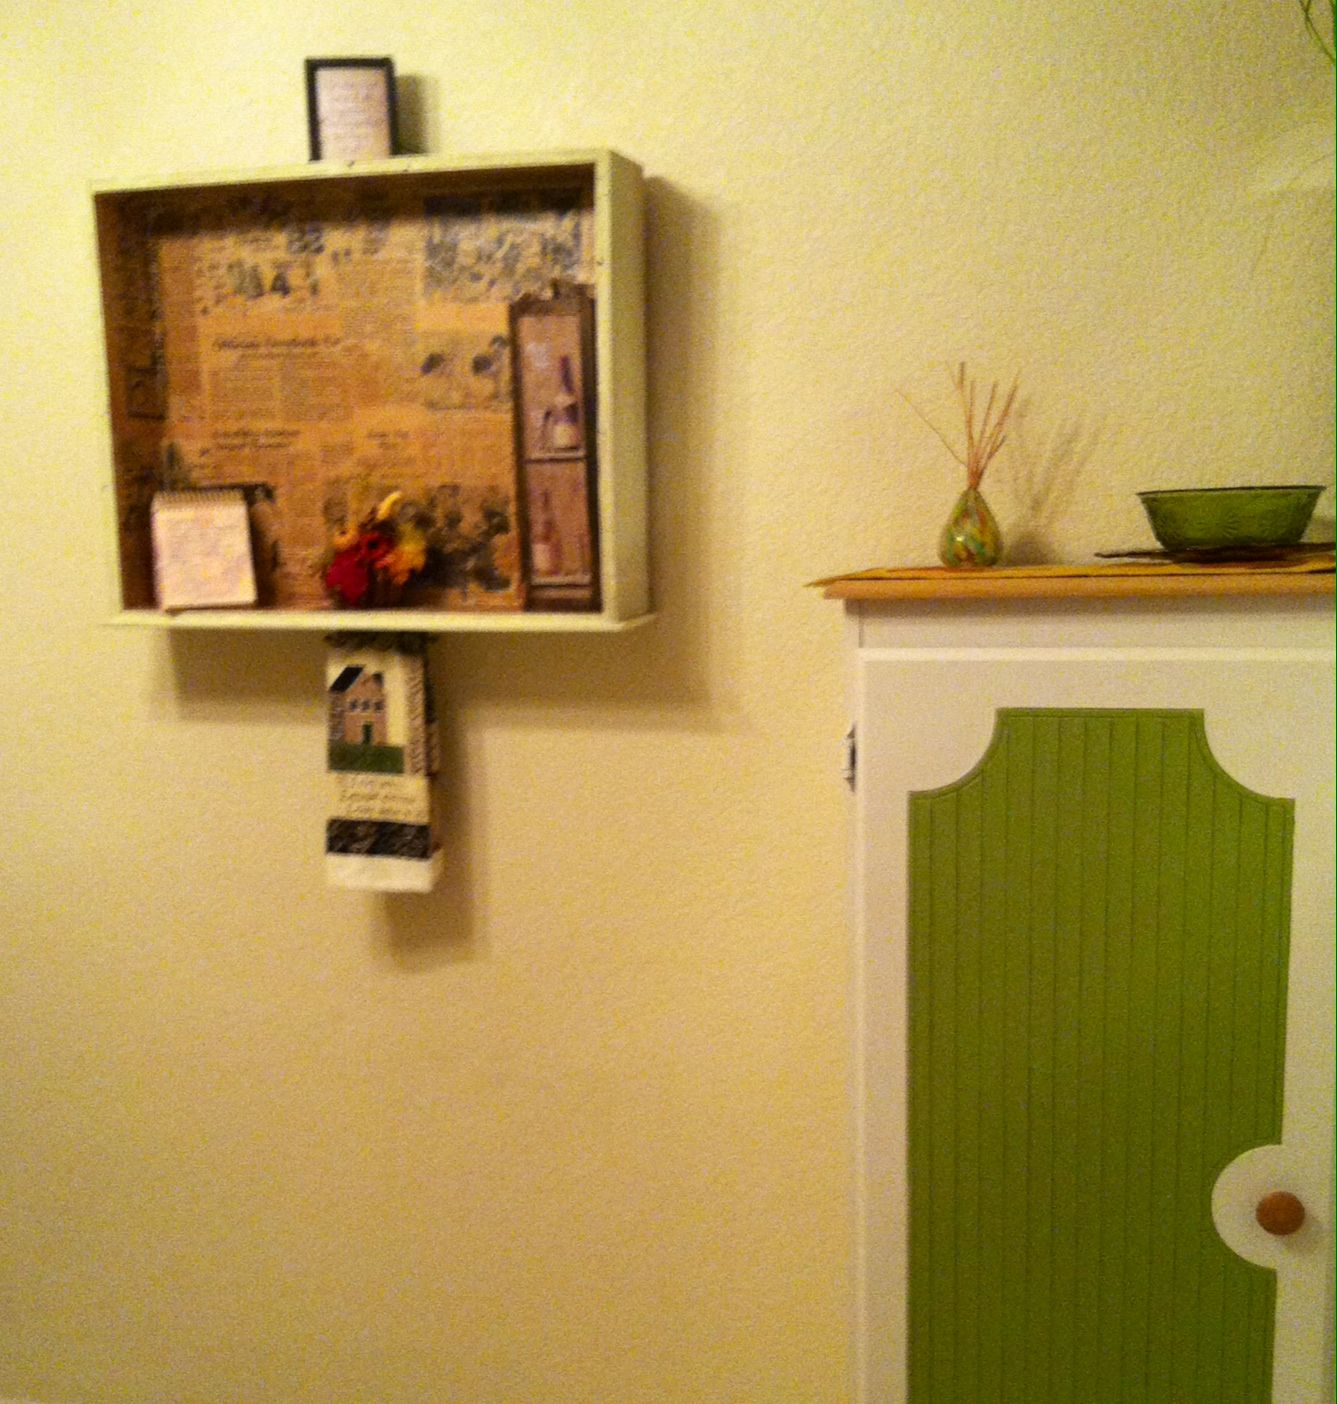 Kitchen Drawer Wall Shelf Paper Mâché Family or Old Newspaper ...